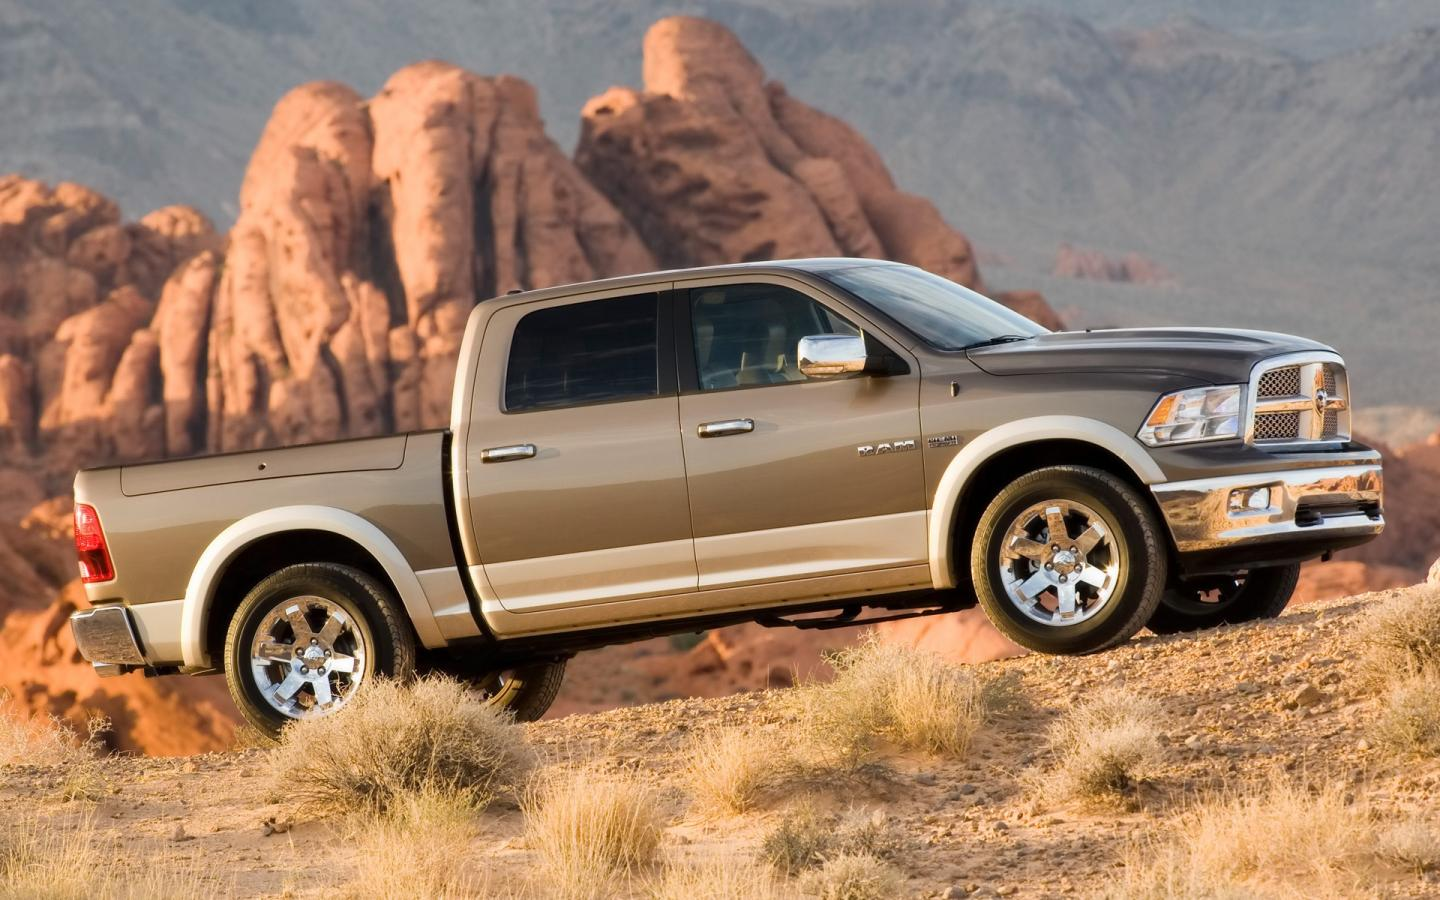 2009 Dodge Ram Laramie Side Angle 1440x900